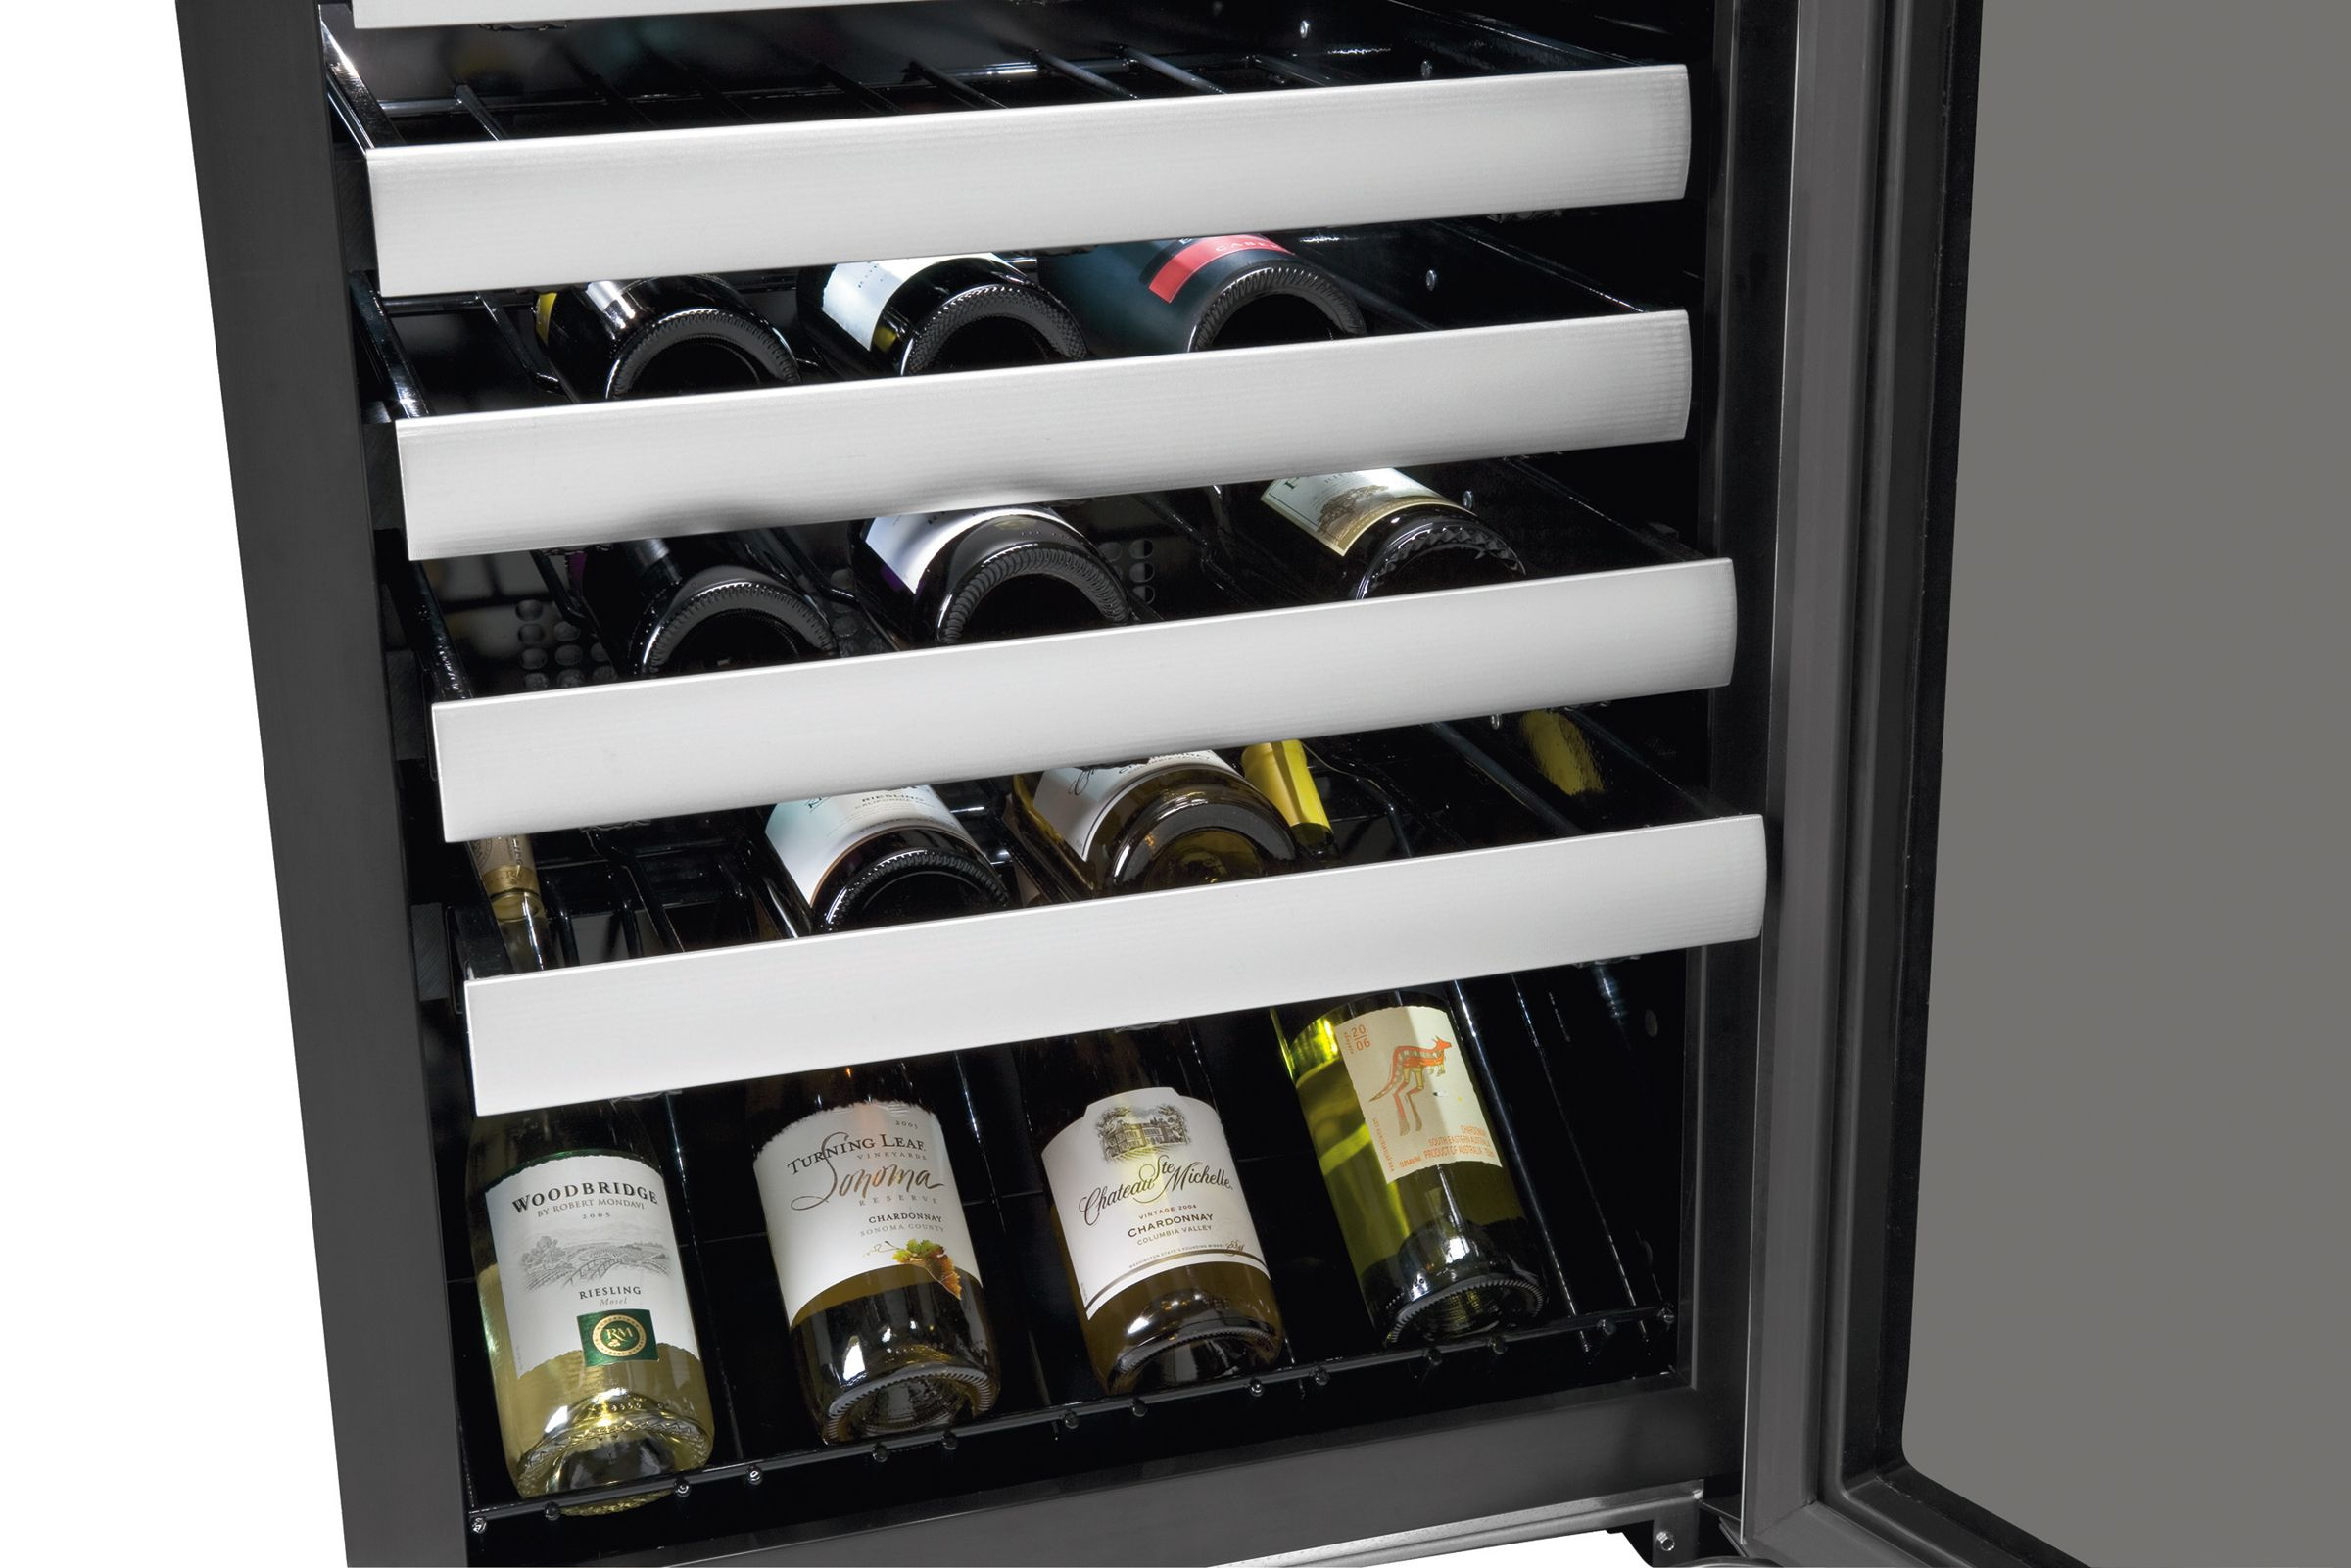 Electrolux 44 Bottle Wine Cooler - Stainless Steel